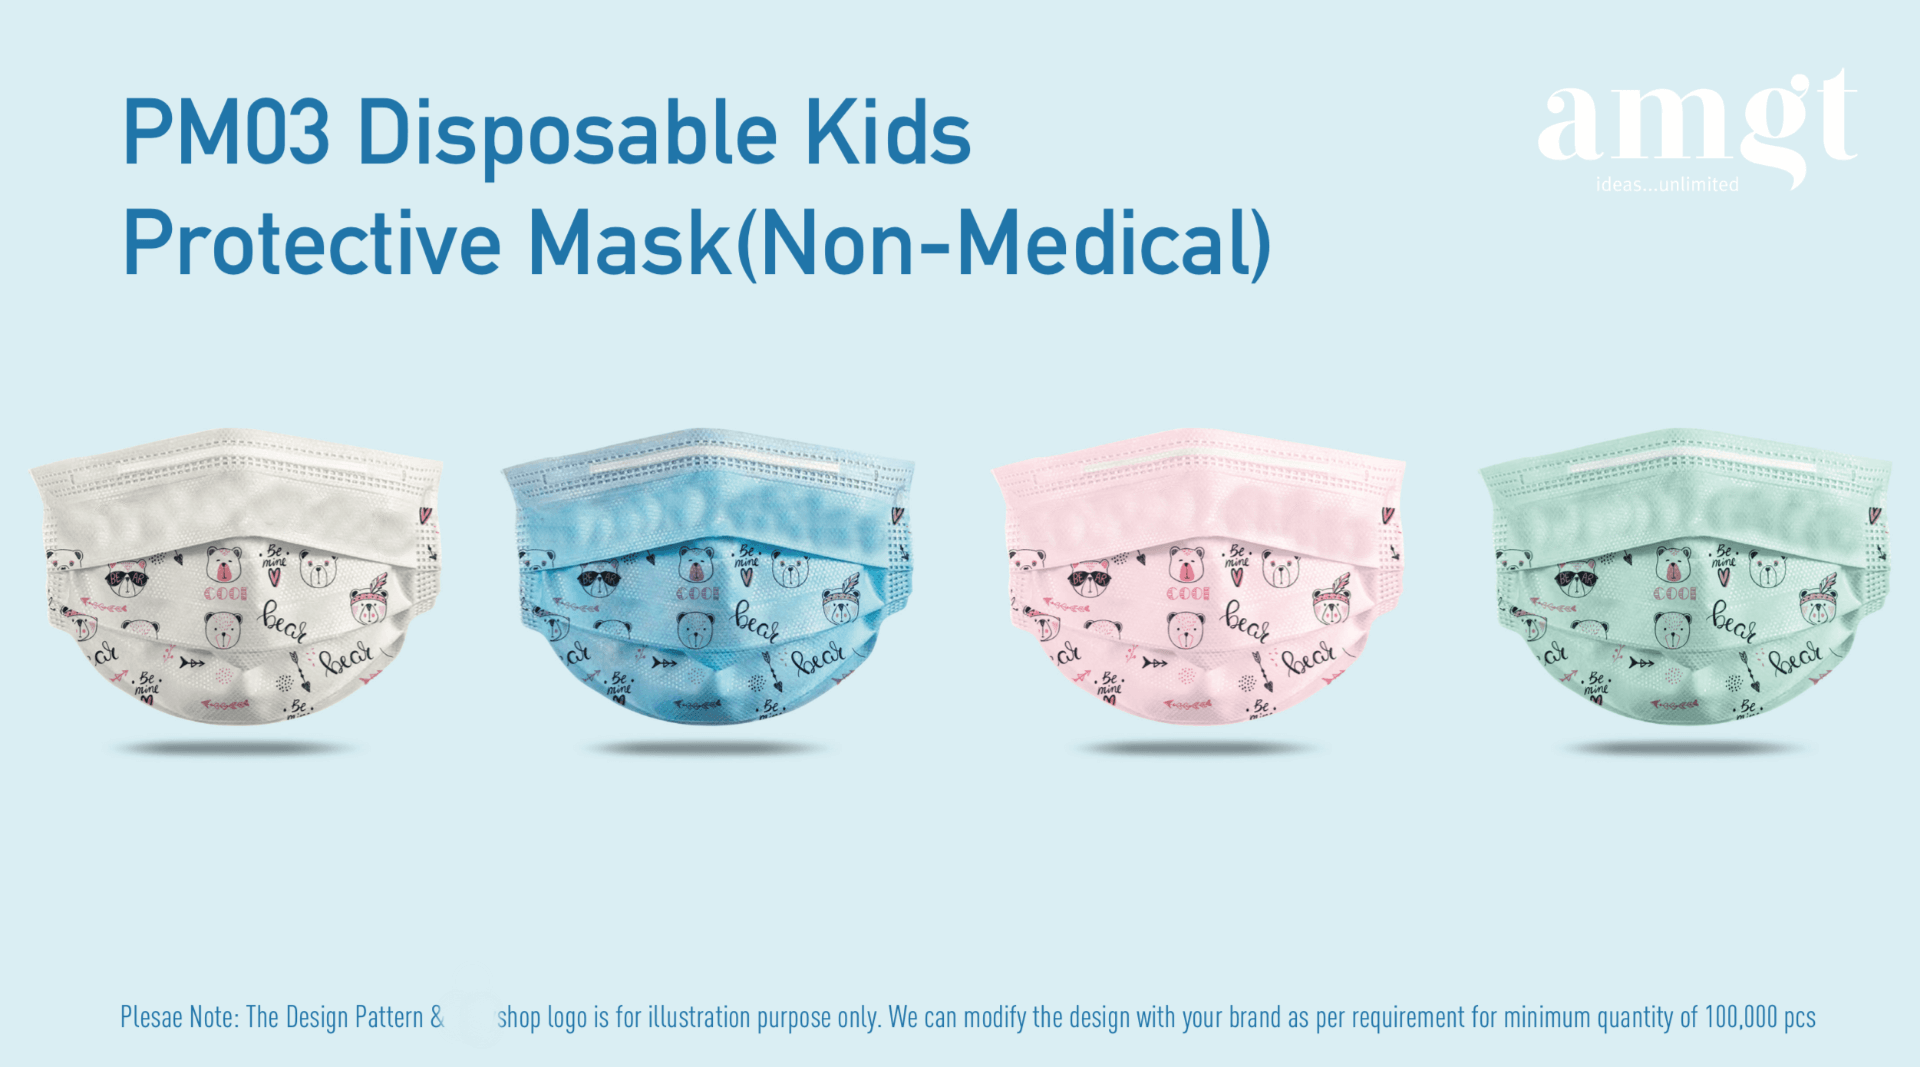 PM03 Disposable Kids Mask in Dubai